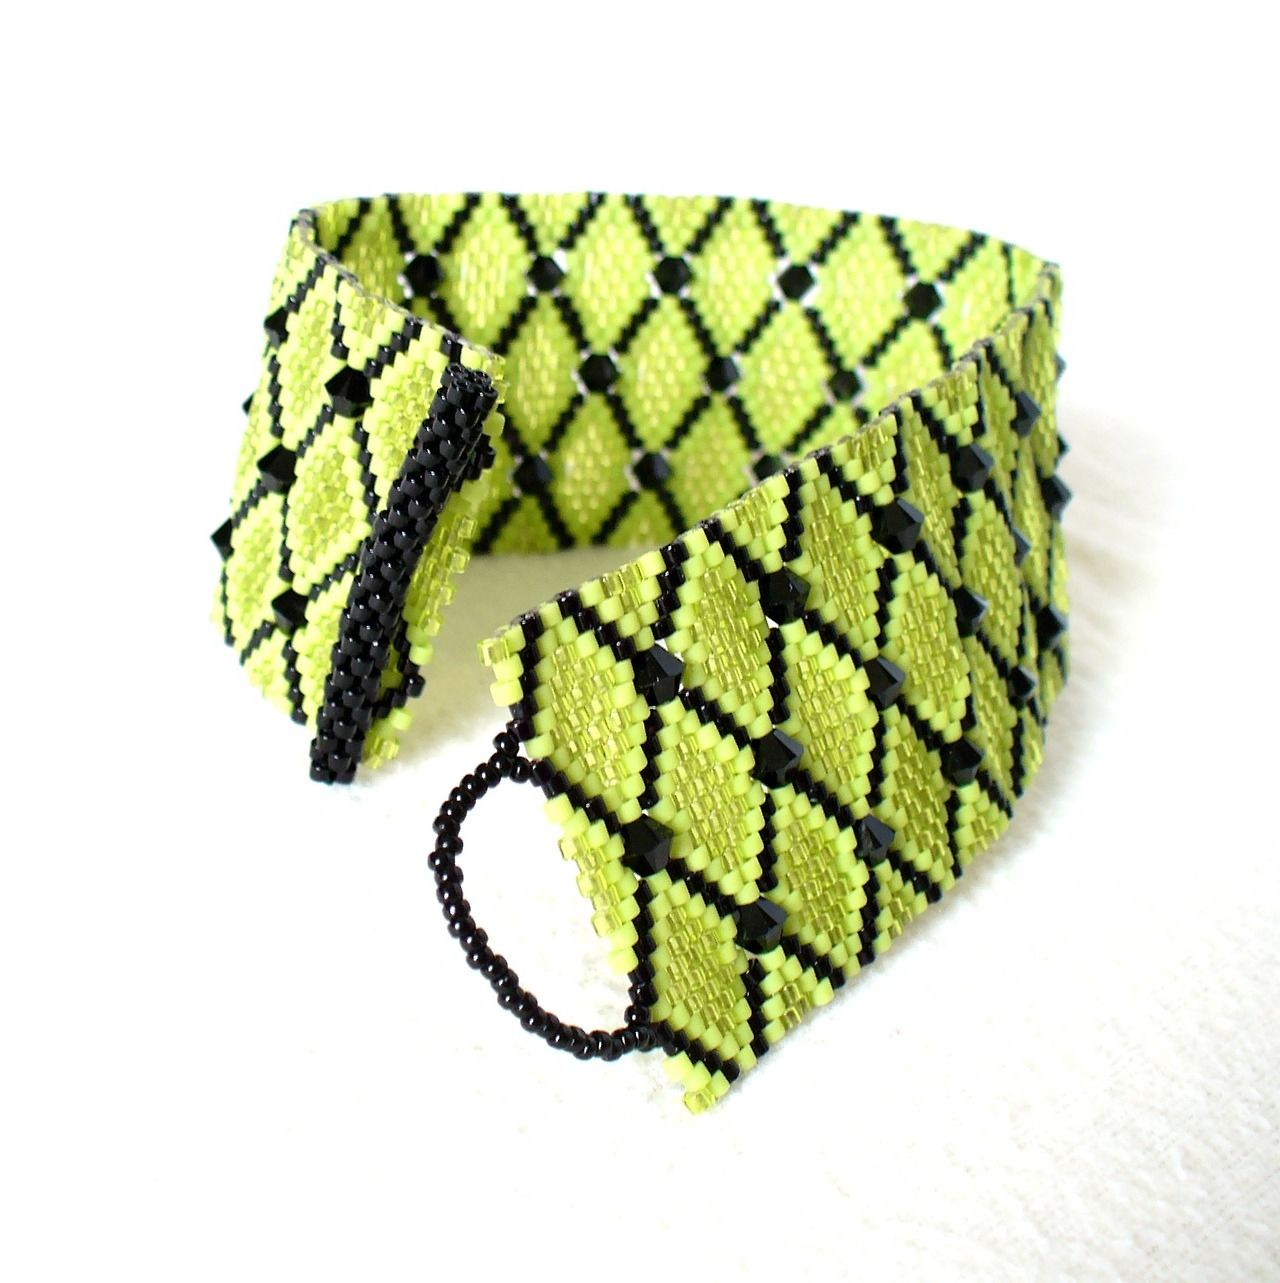 Beaded Peyote Cuff in Chartreuse / Lime Green & Black with Swarovski Crystals